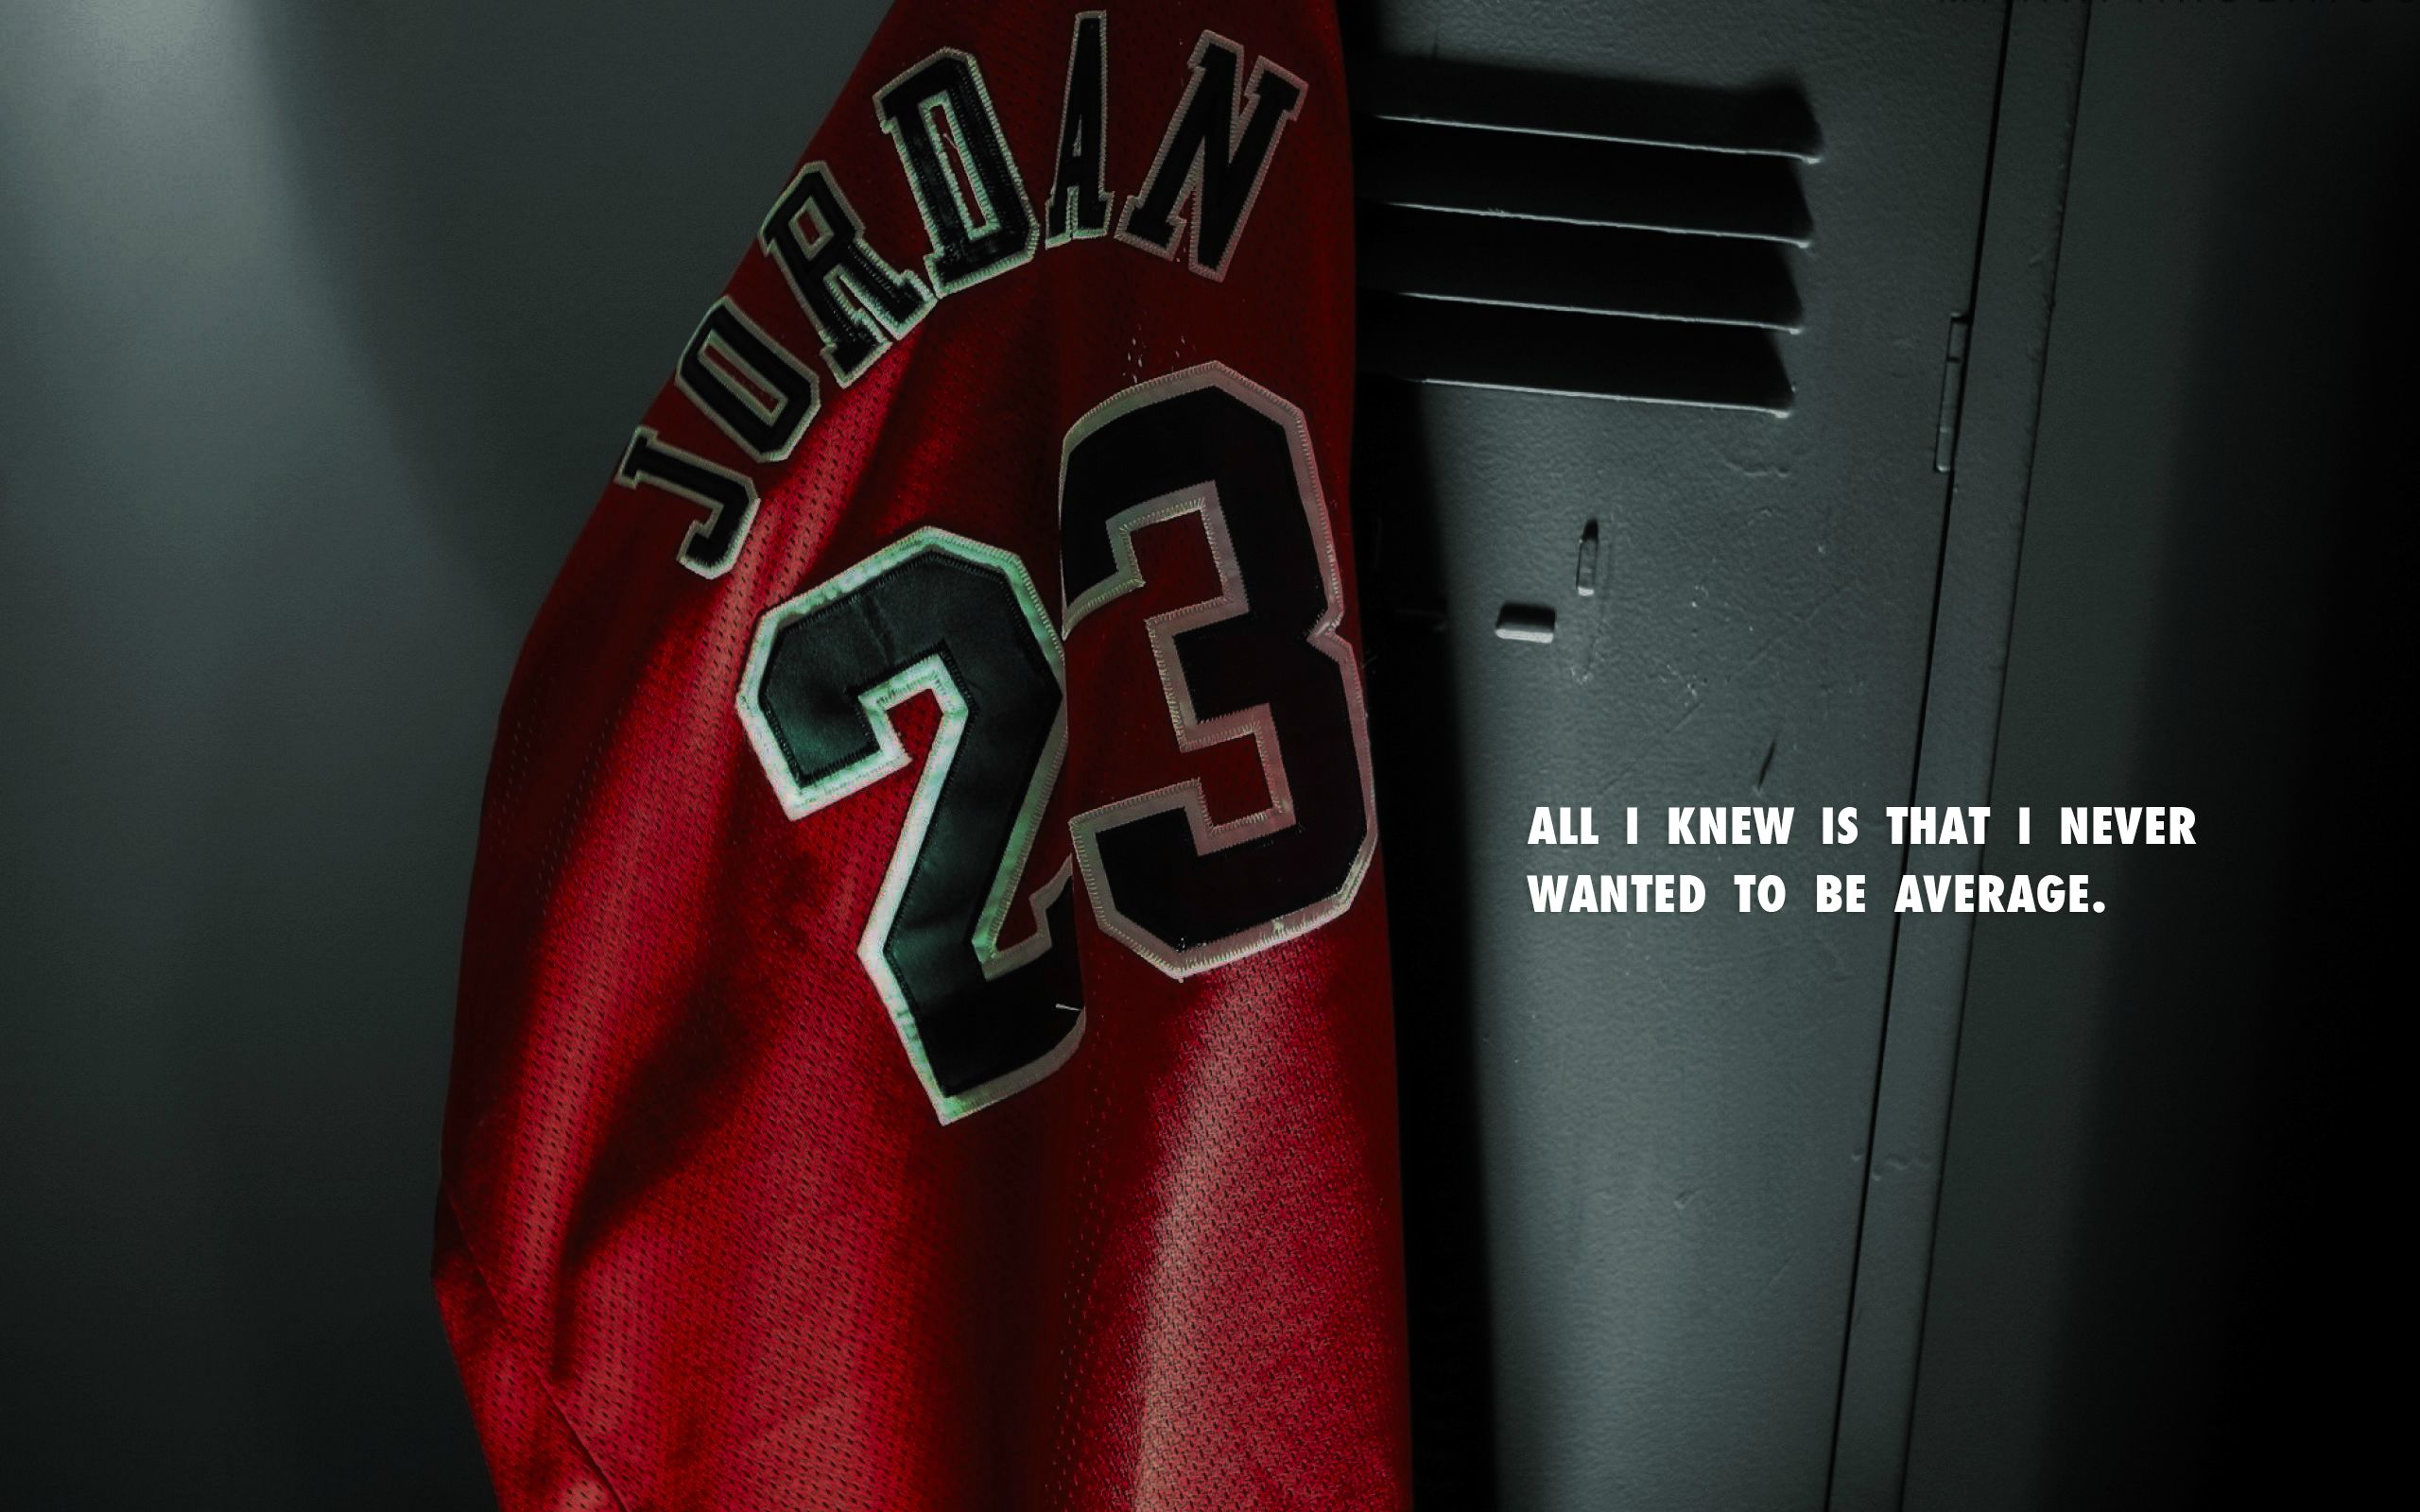 Motivational Quotes Wallpaper Iphone 4 Michael Jordan Quote Hd Wallpapers Free Download